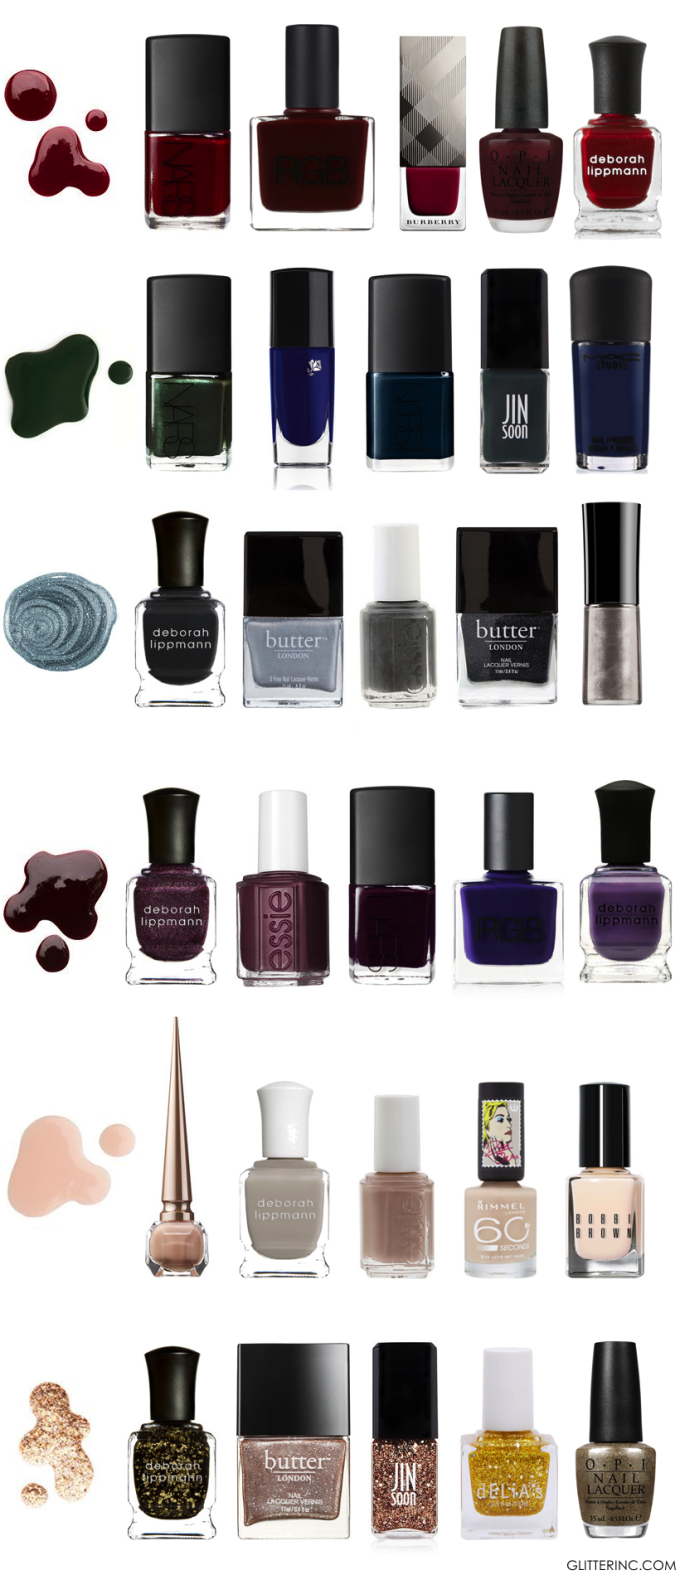 Fall Winter Nail Polish Guide - nails - colors - glitterinc.com